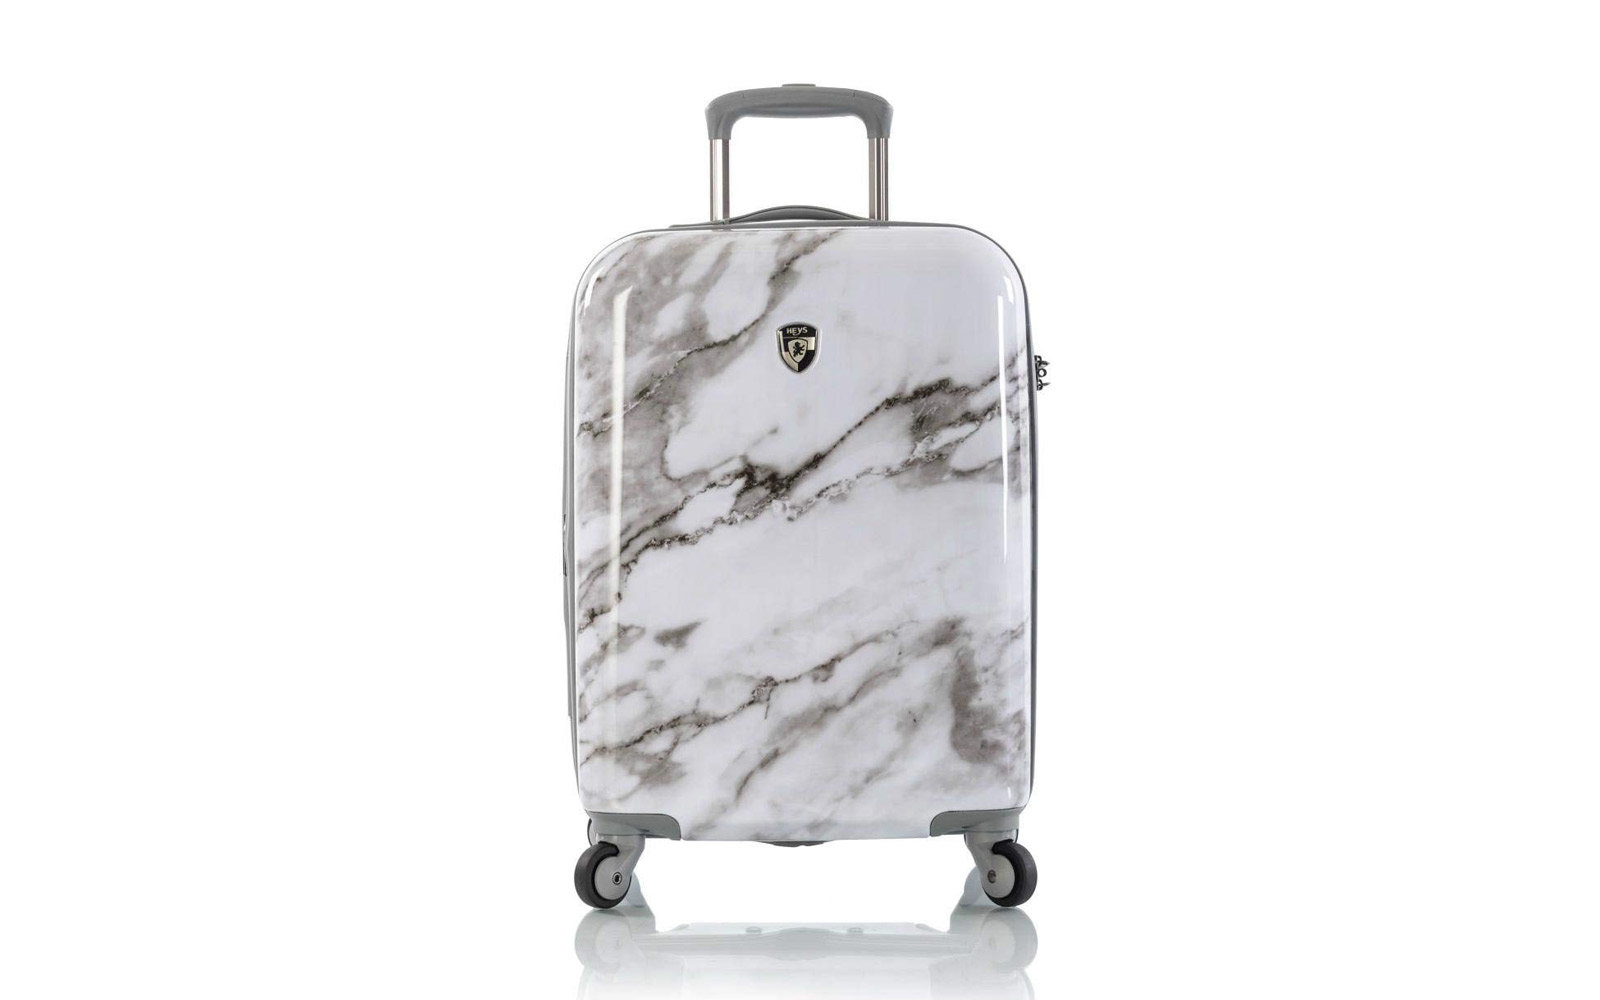 Heys Carrara White Marble 21-inch Spinner Carry-on